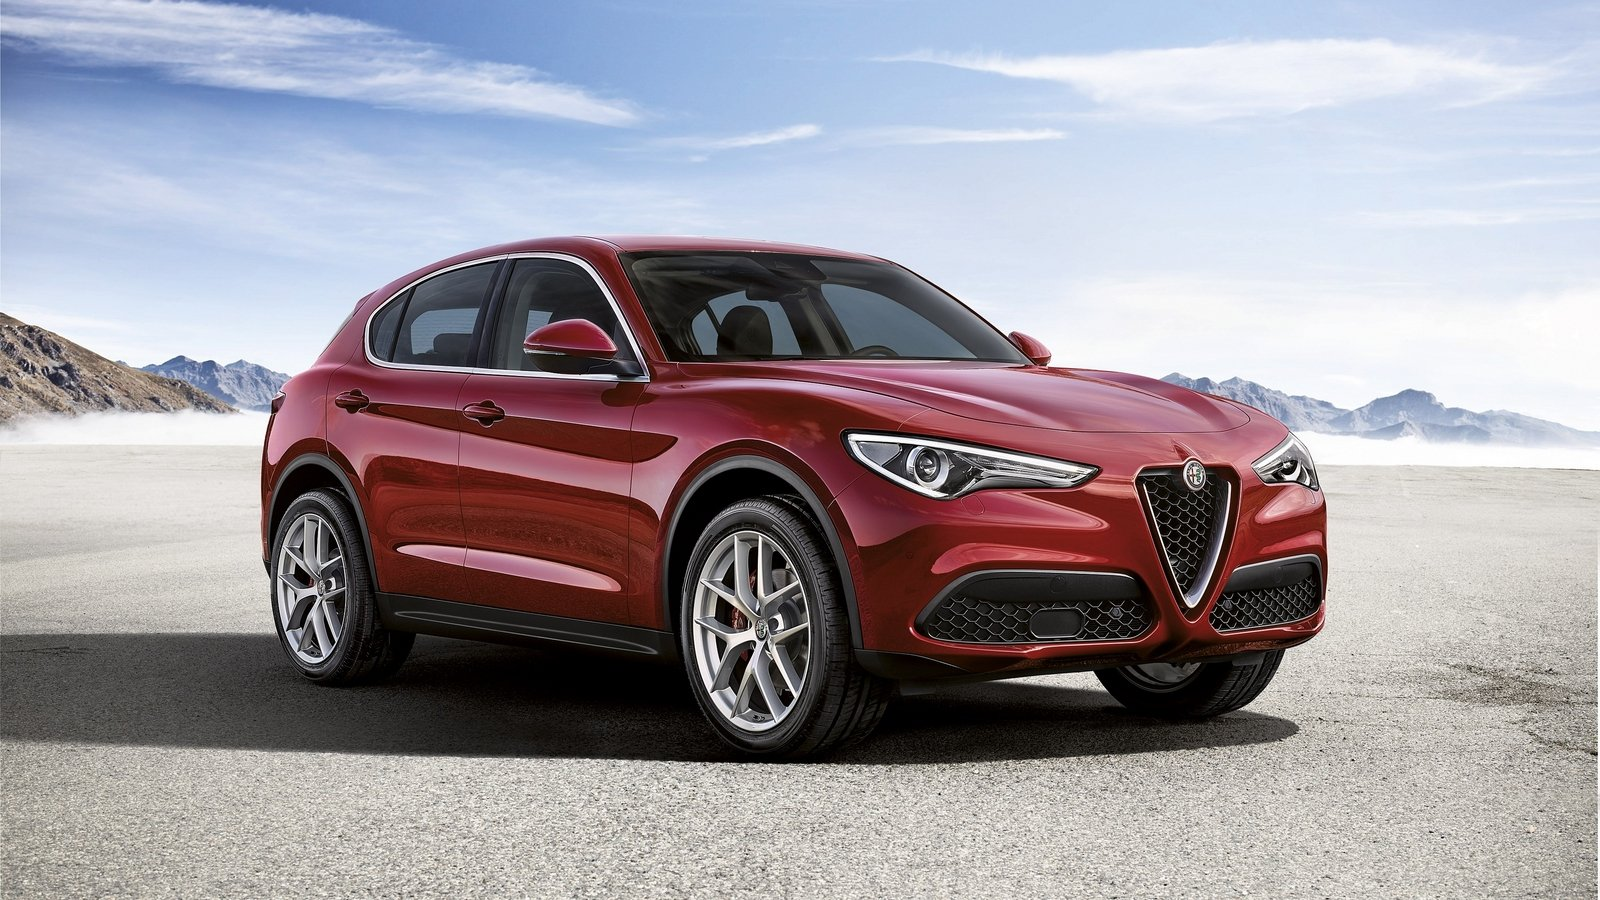 2017 alfa romeo stelvio first edition review top speed. Black Bedroom Furniture Sets. Home Design Ideas